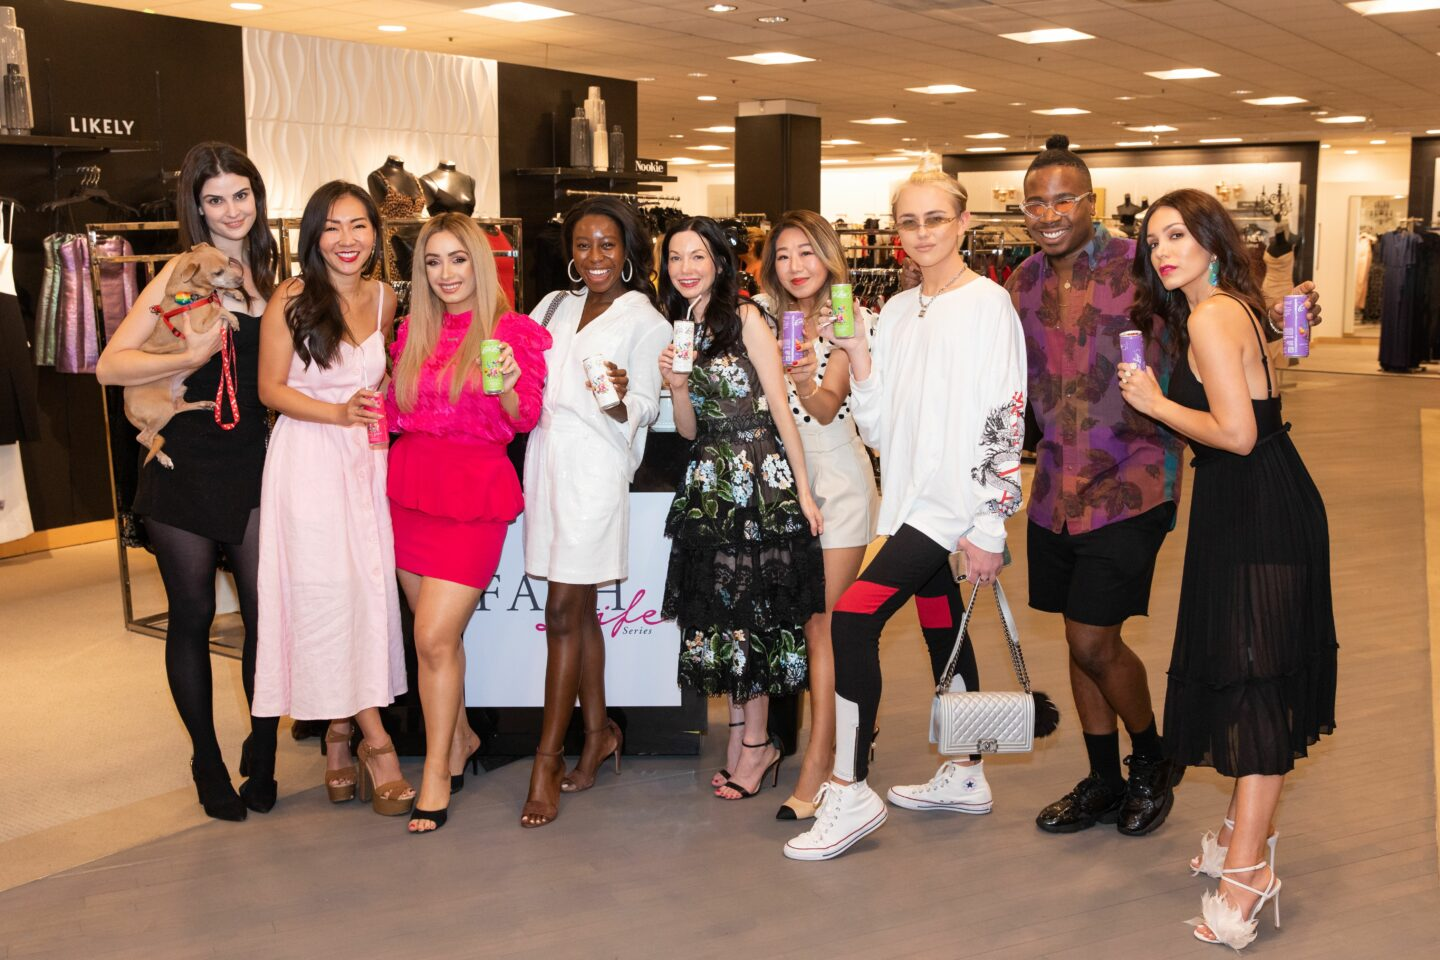 The Fash Life Series Cast Members sip Casa Luigi Prosecco at their Bloomingdale's Beverly Center Sneak Peek Party